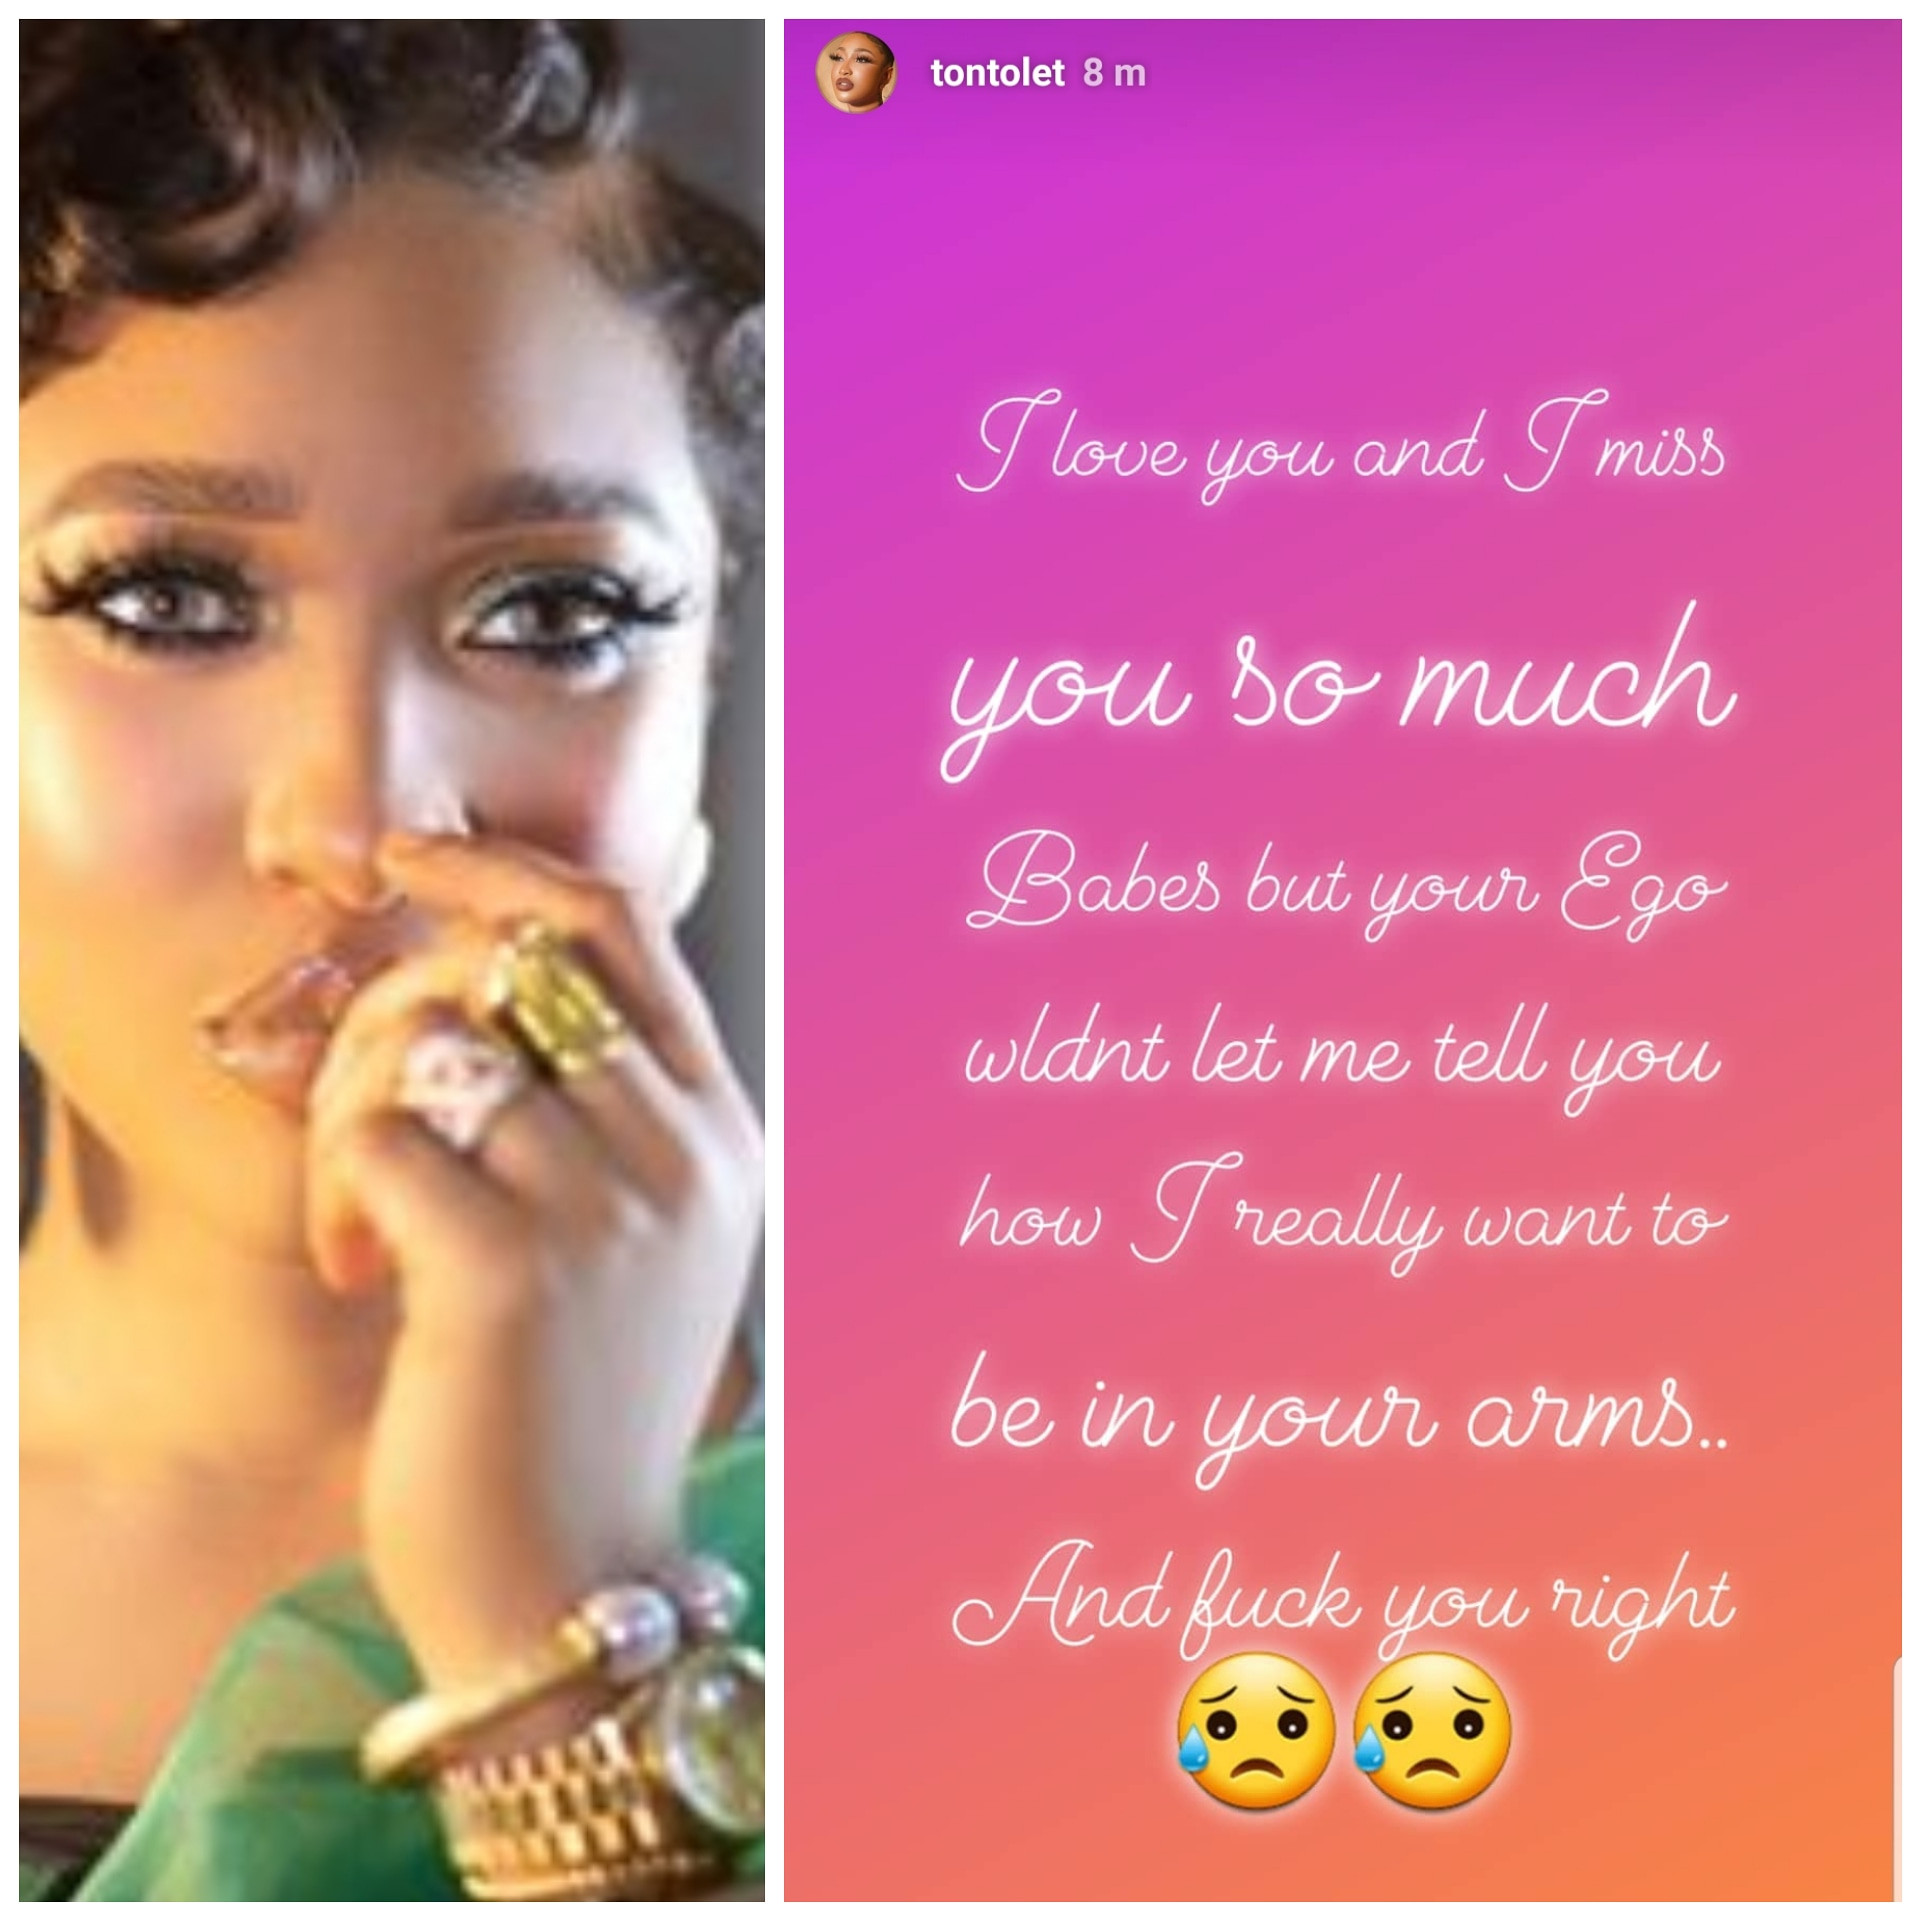 I really want to be in your arms and f**k you right - Tonto Dikeh sends passionate appeal to her bae on IG